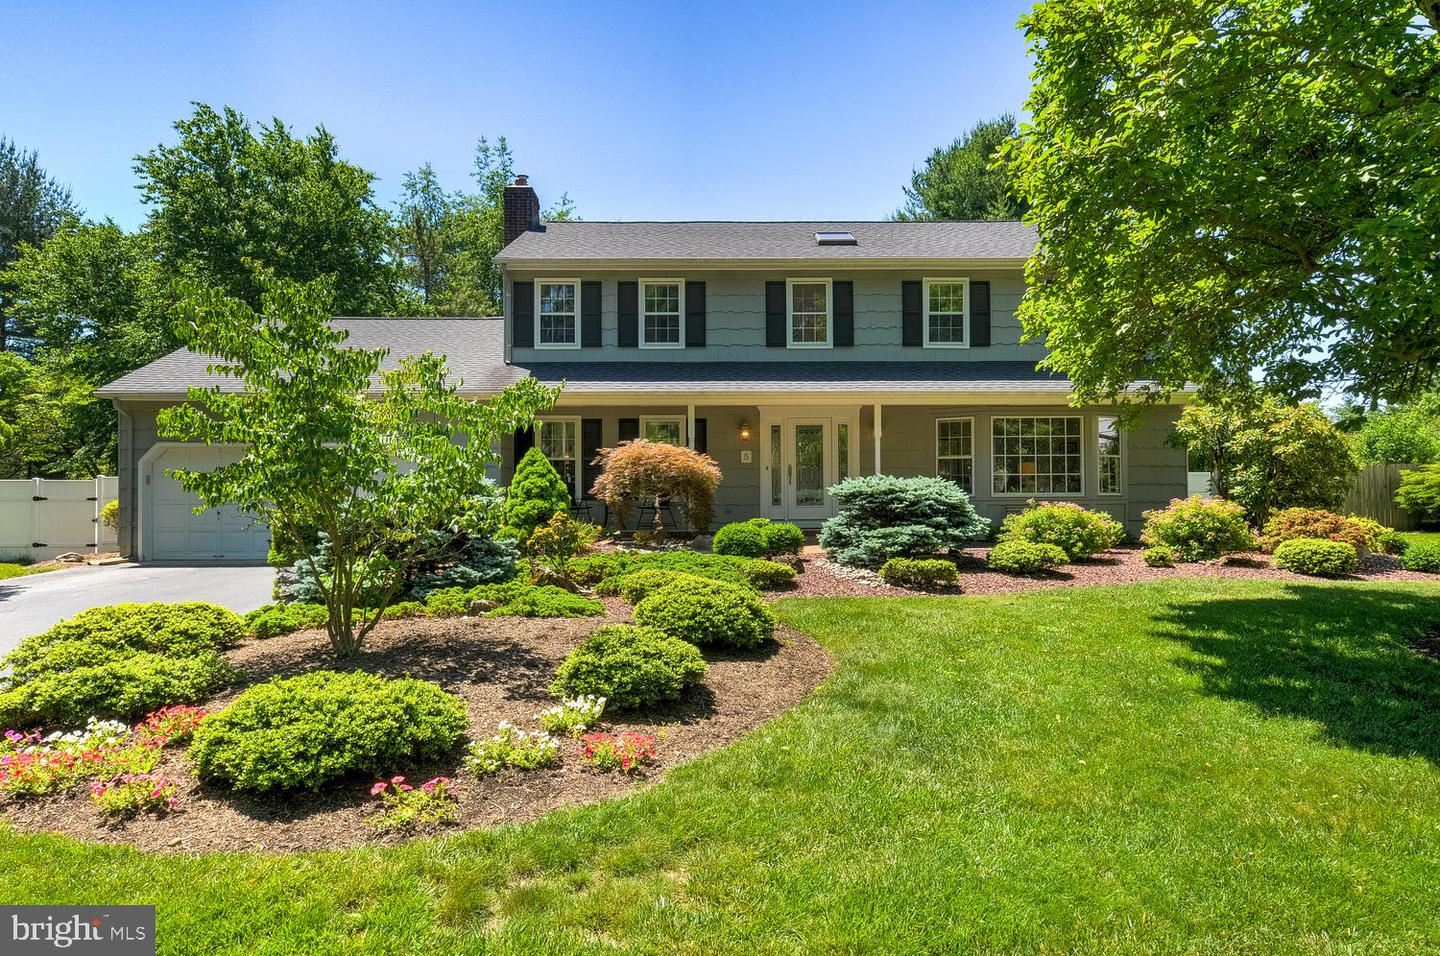 5 WORCHESTER LN, Princeton Junction, NJ 08550 - #: NJME296914